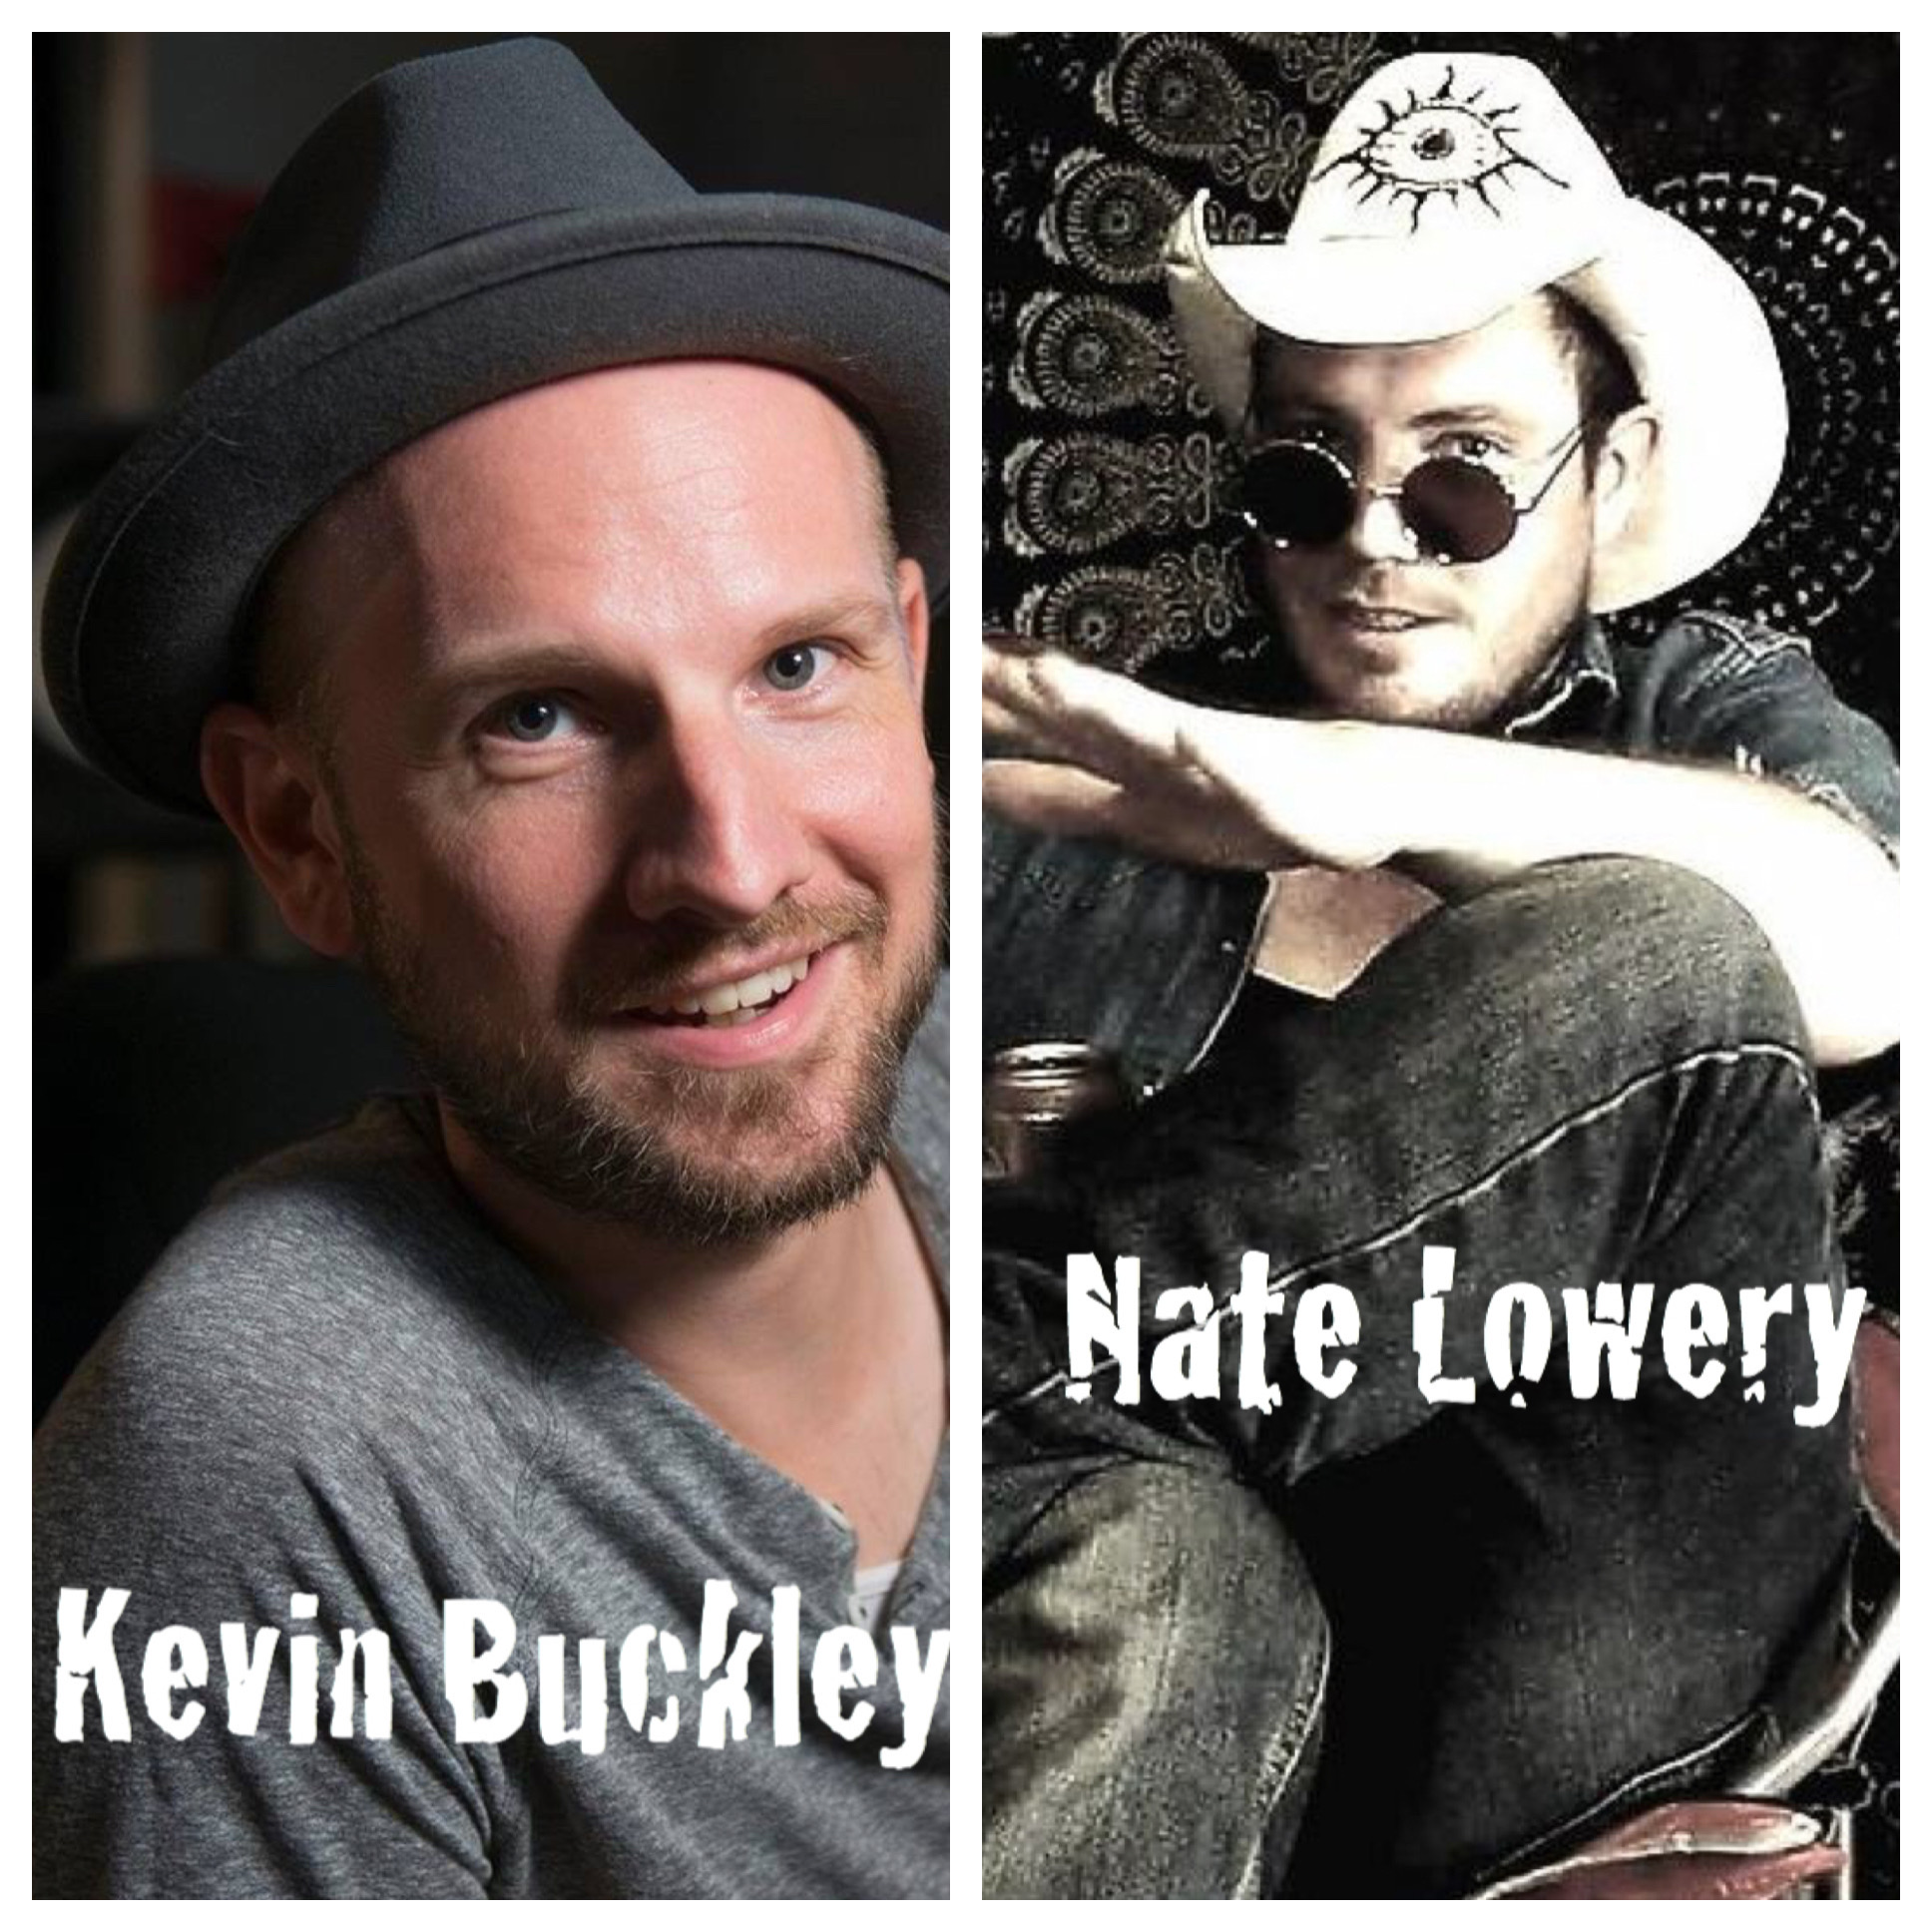 kevin buckley and nate lowery